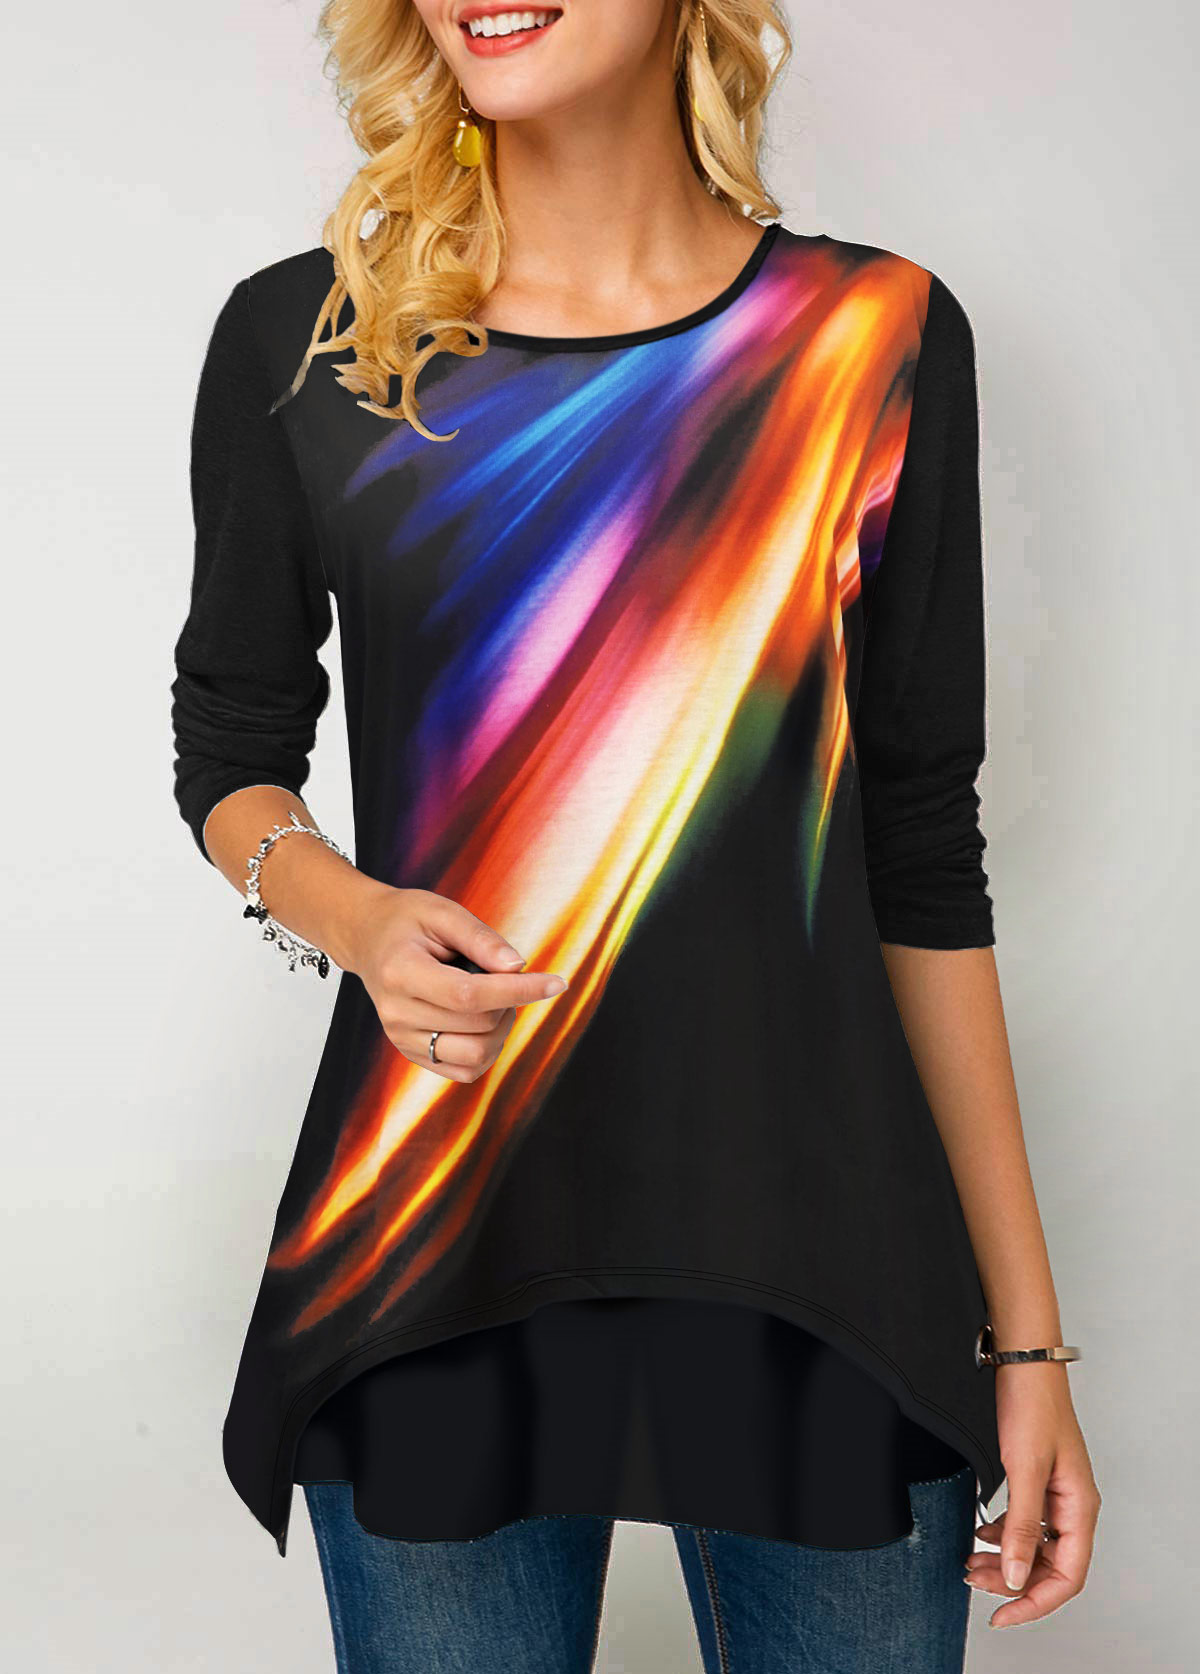 ROTITA Printed Long Sleeve Round Neck Rainbow Color T Shirt